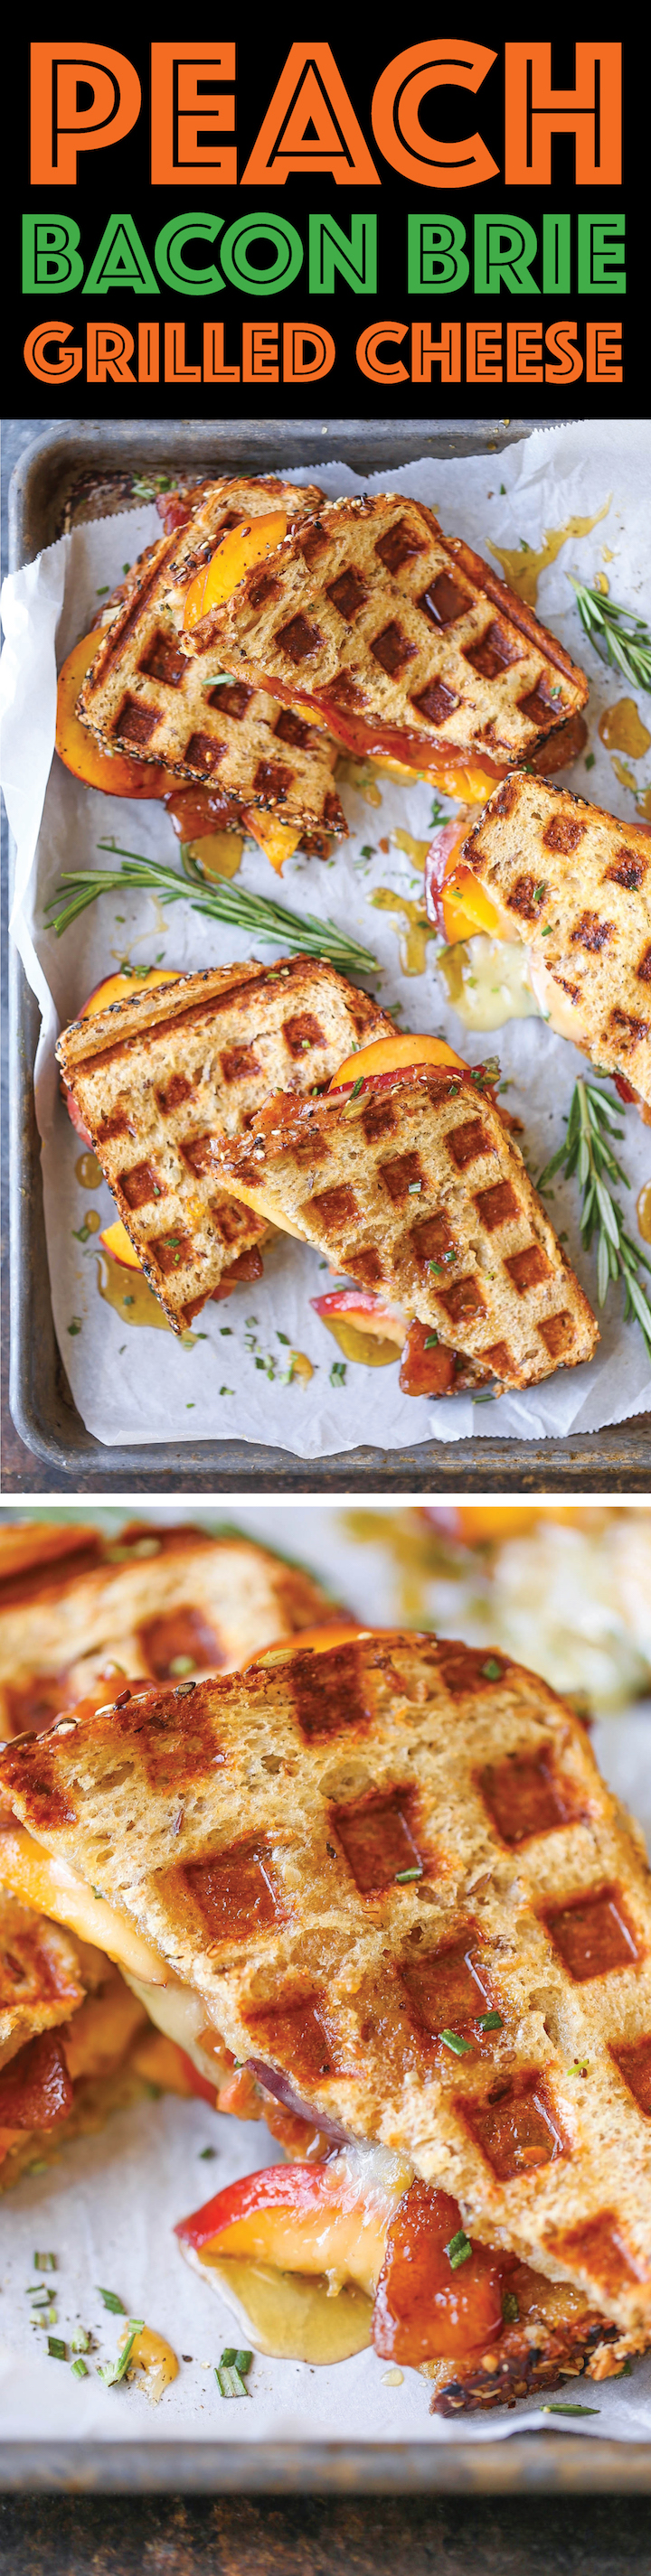 Peach Bacon Brie Grilled Cheese - Fresh peaches, peach preserves, crisp bacon and ooey gooey melted brie sandwiches made right in the waffle maker! SO EASY!